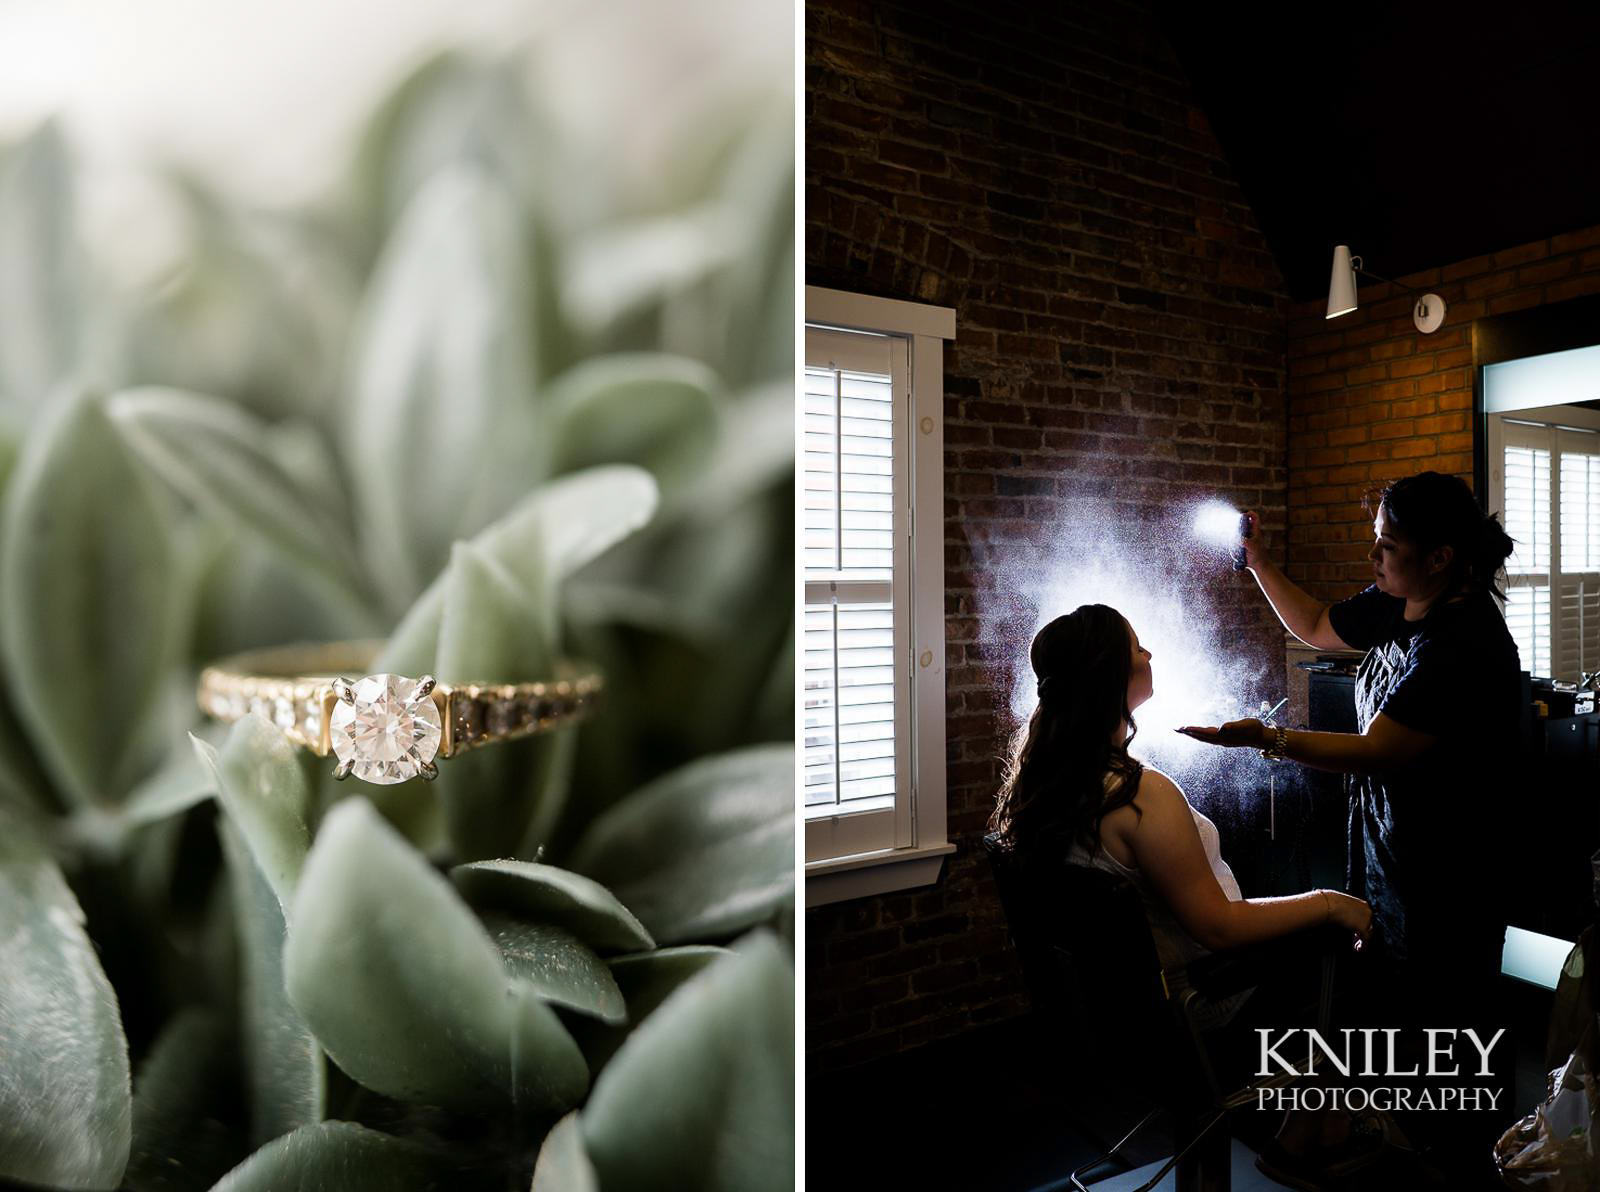 02-Ape-and-Canary-on-Strathallan-wedding-getting-ready-Rochester-NY-Wedding-Photography.jpg